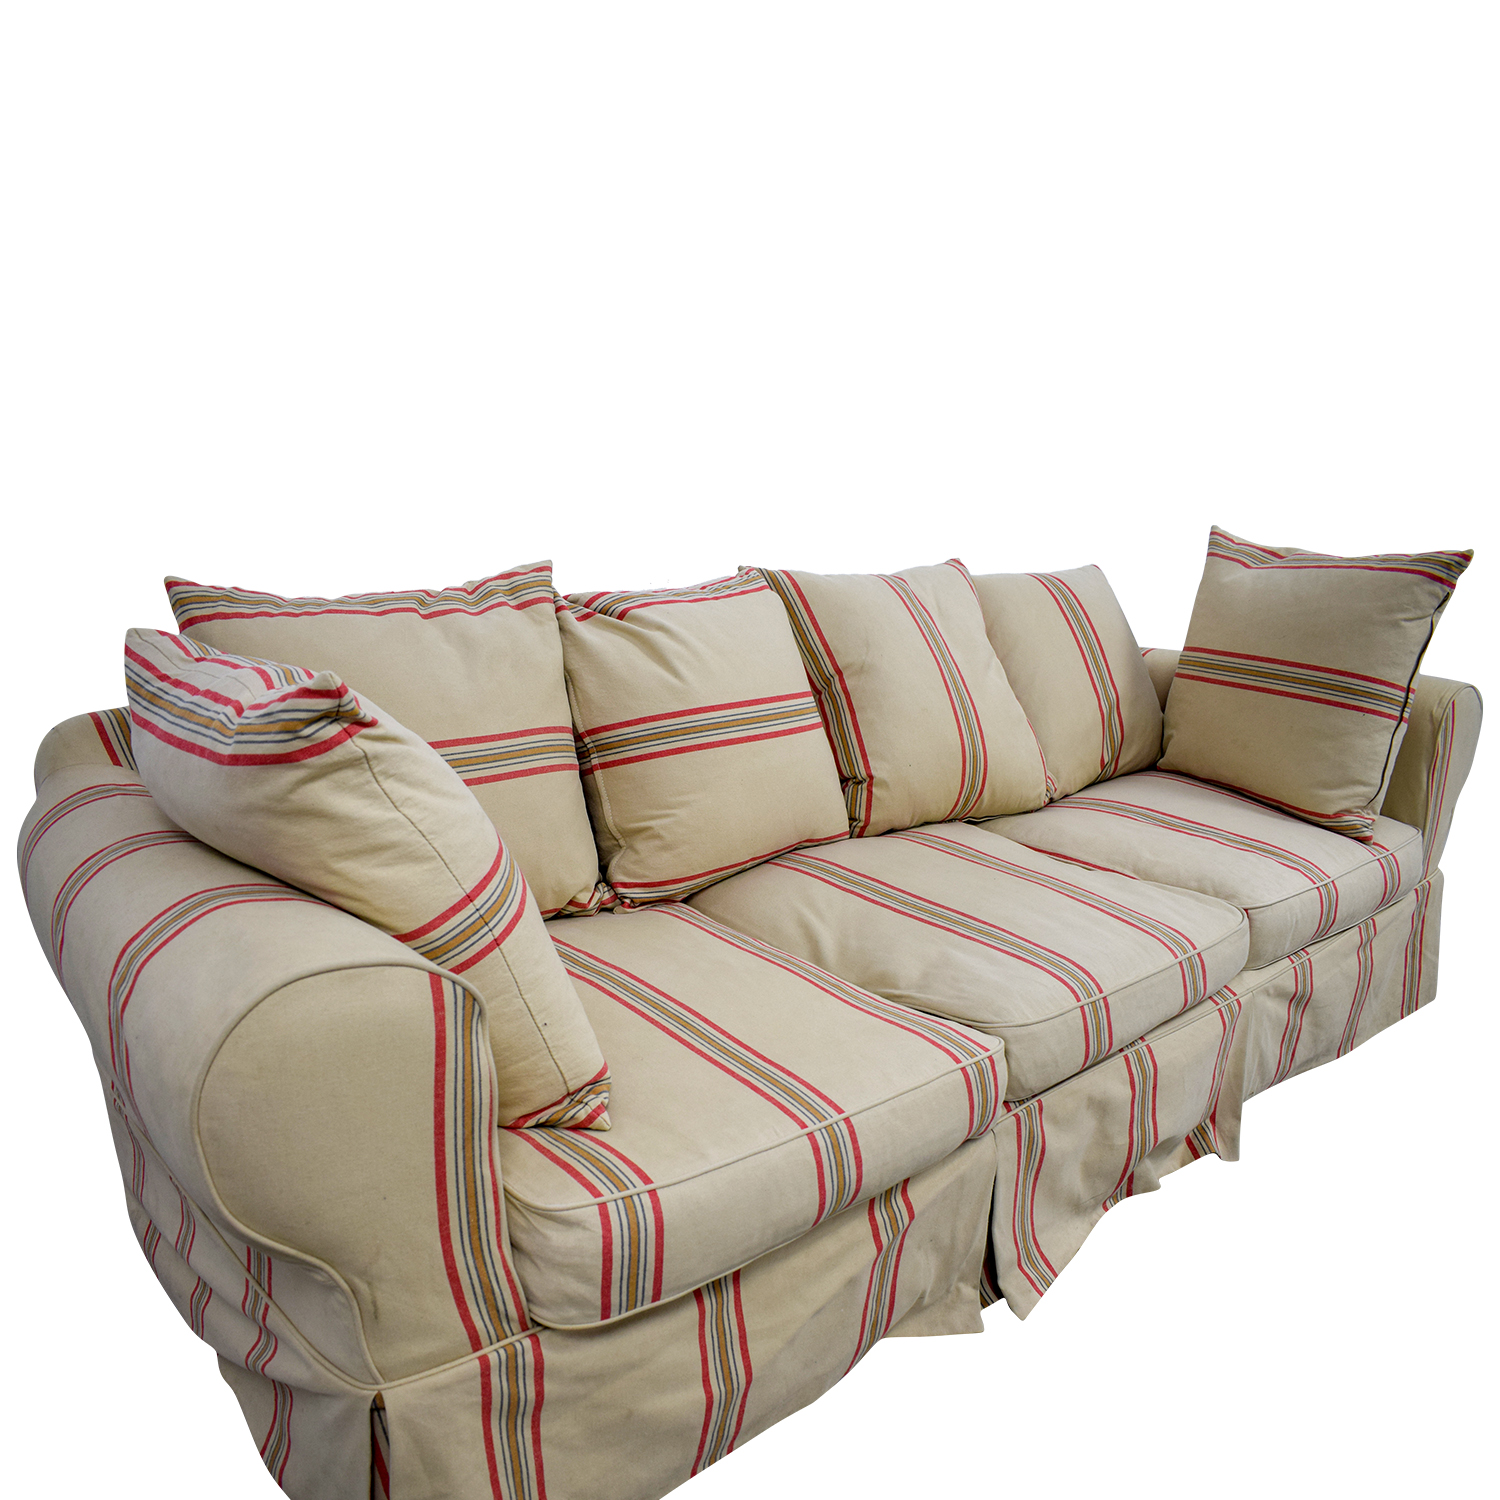 90 off beige with red stripe three cushion slipcover sofa sofas. Black Bedroom Furniture Sets. Home Design Ideas